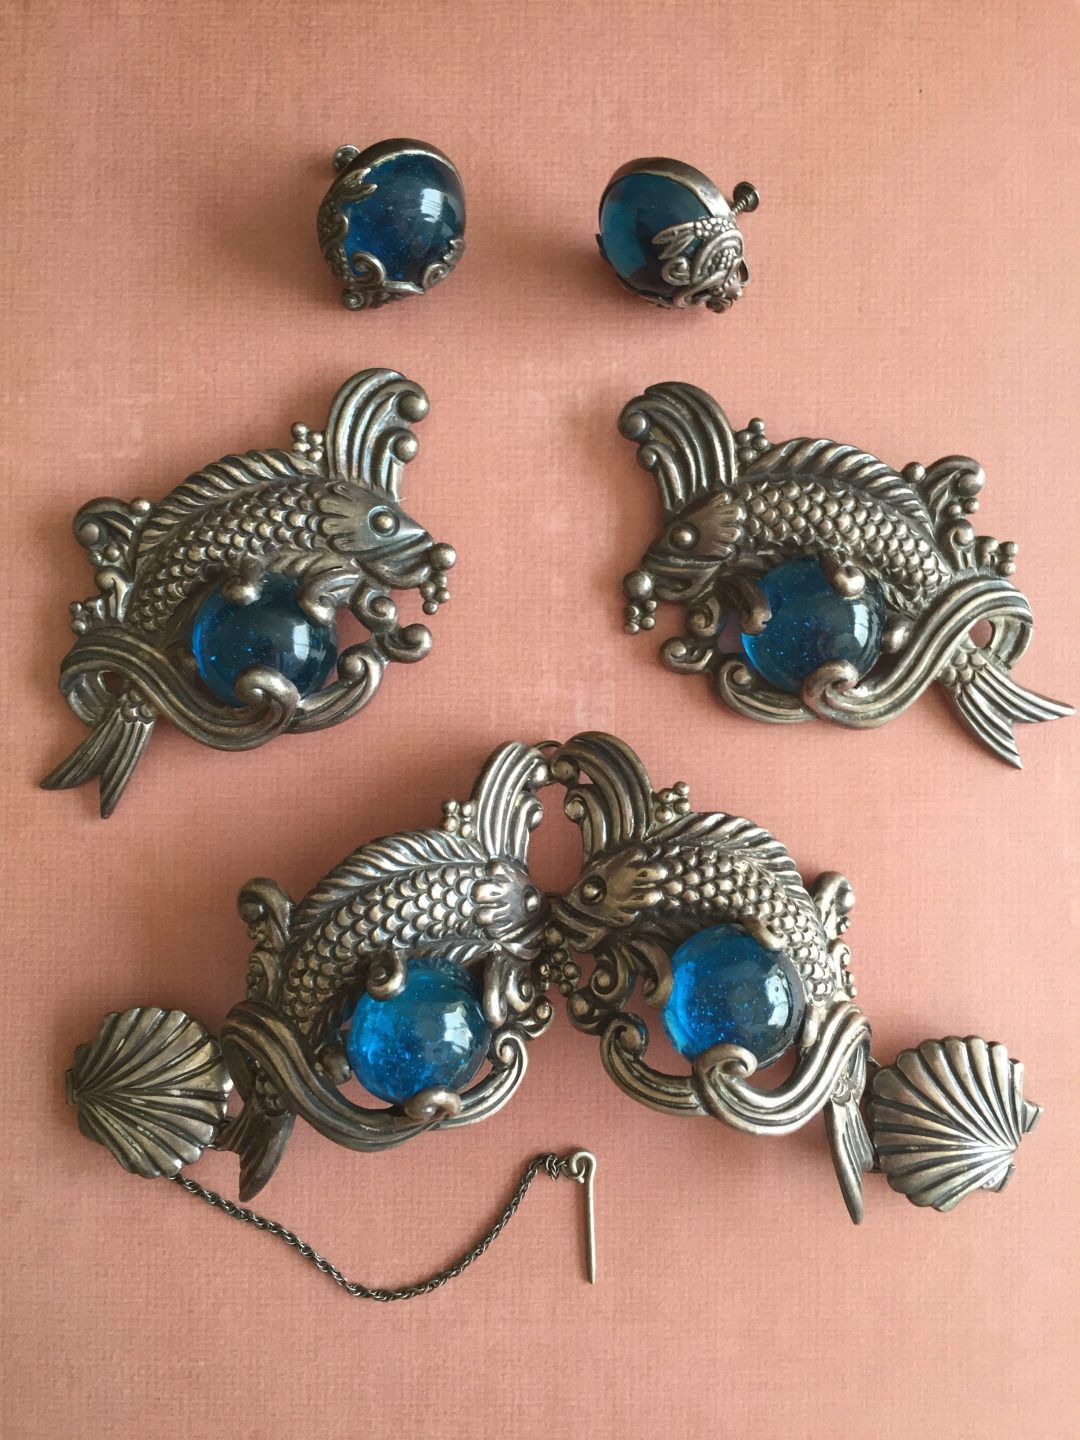 Outstanding Vintage and Rare Los Castillo Sail Fish 4 Piece Set Signed